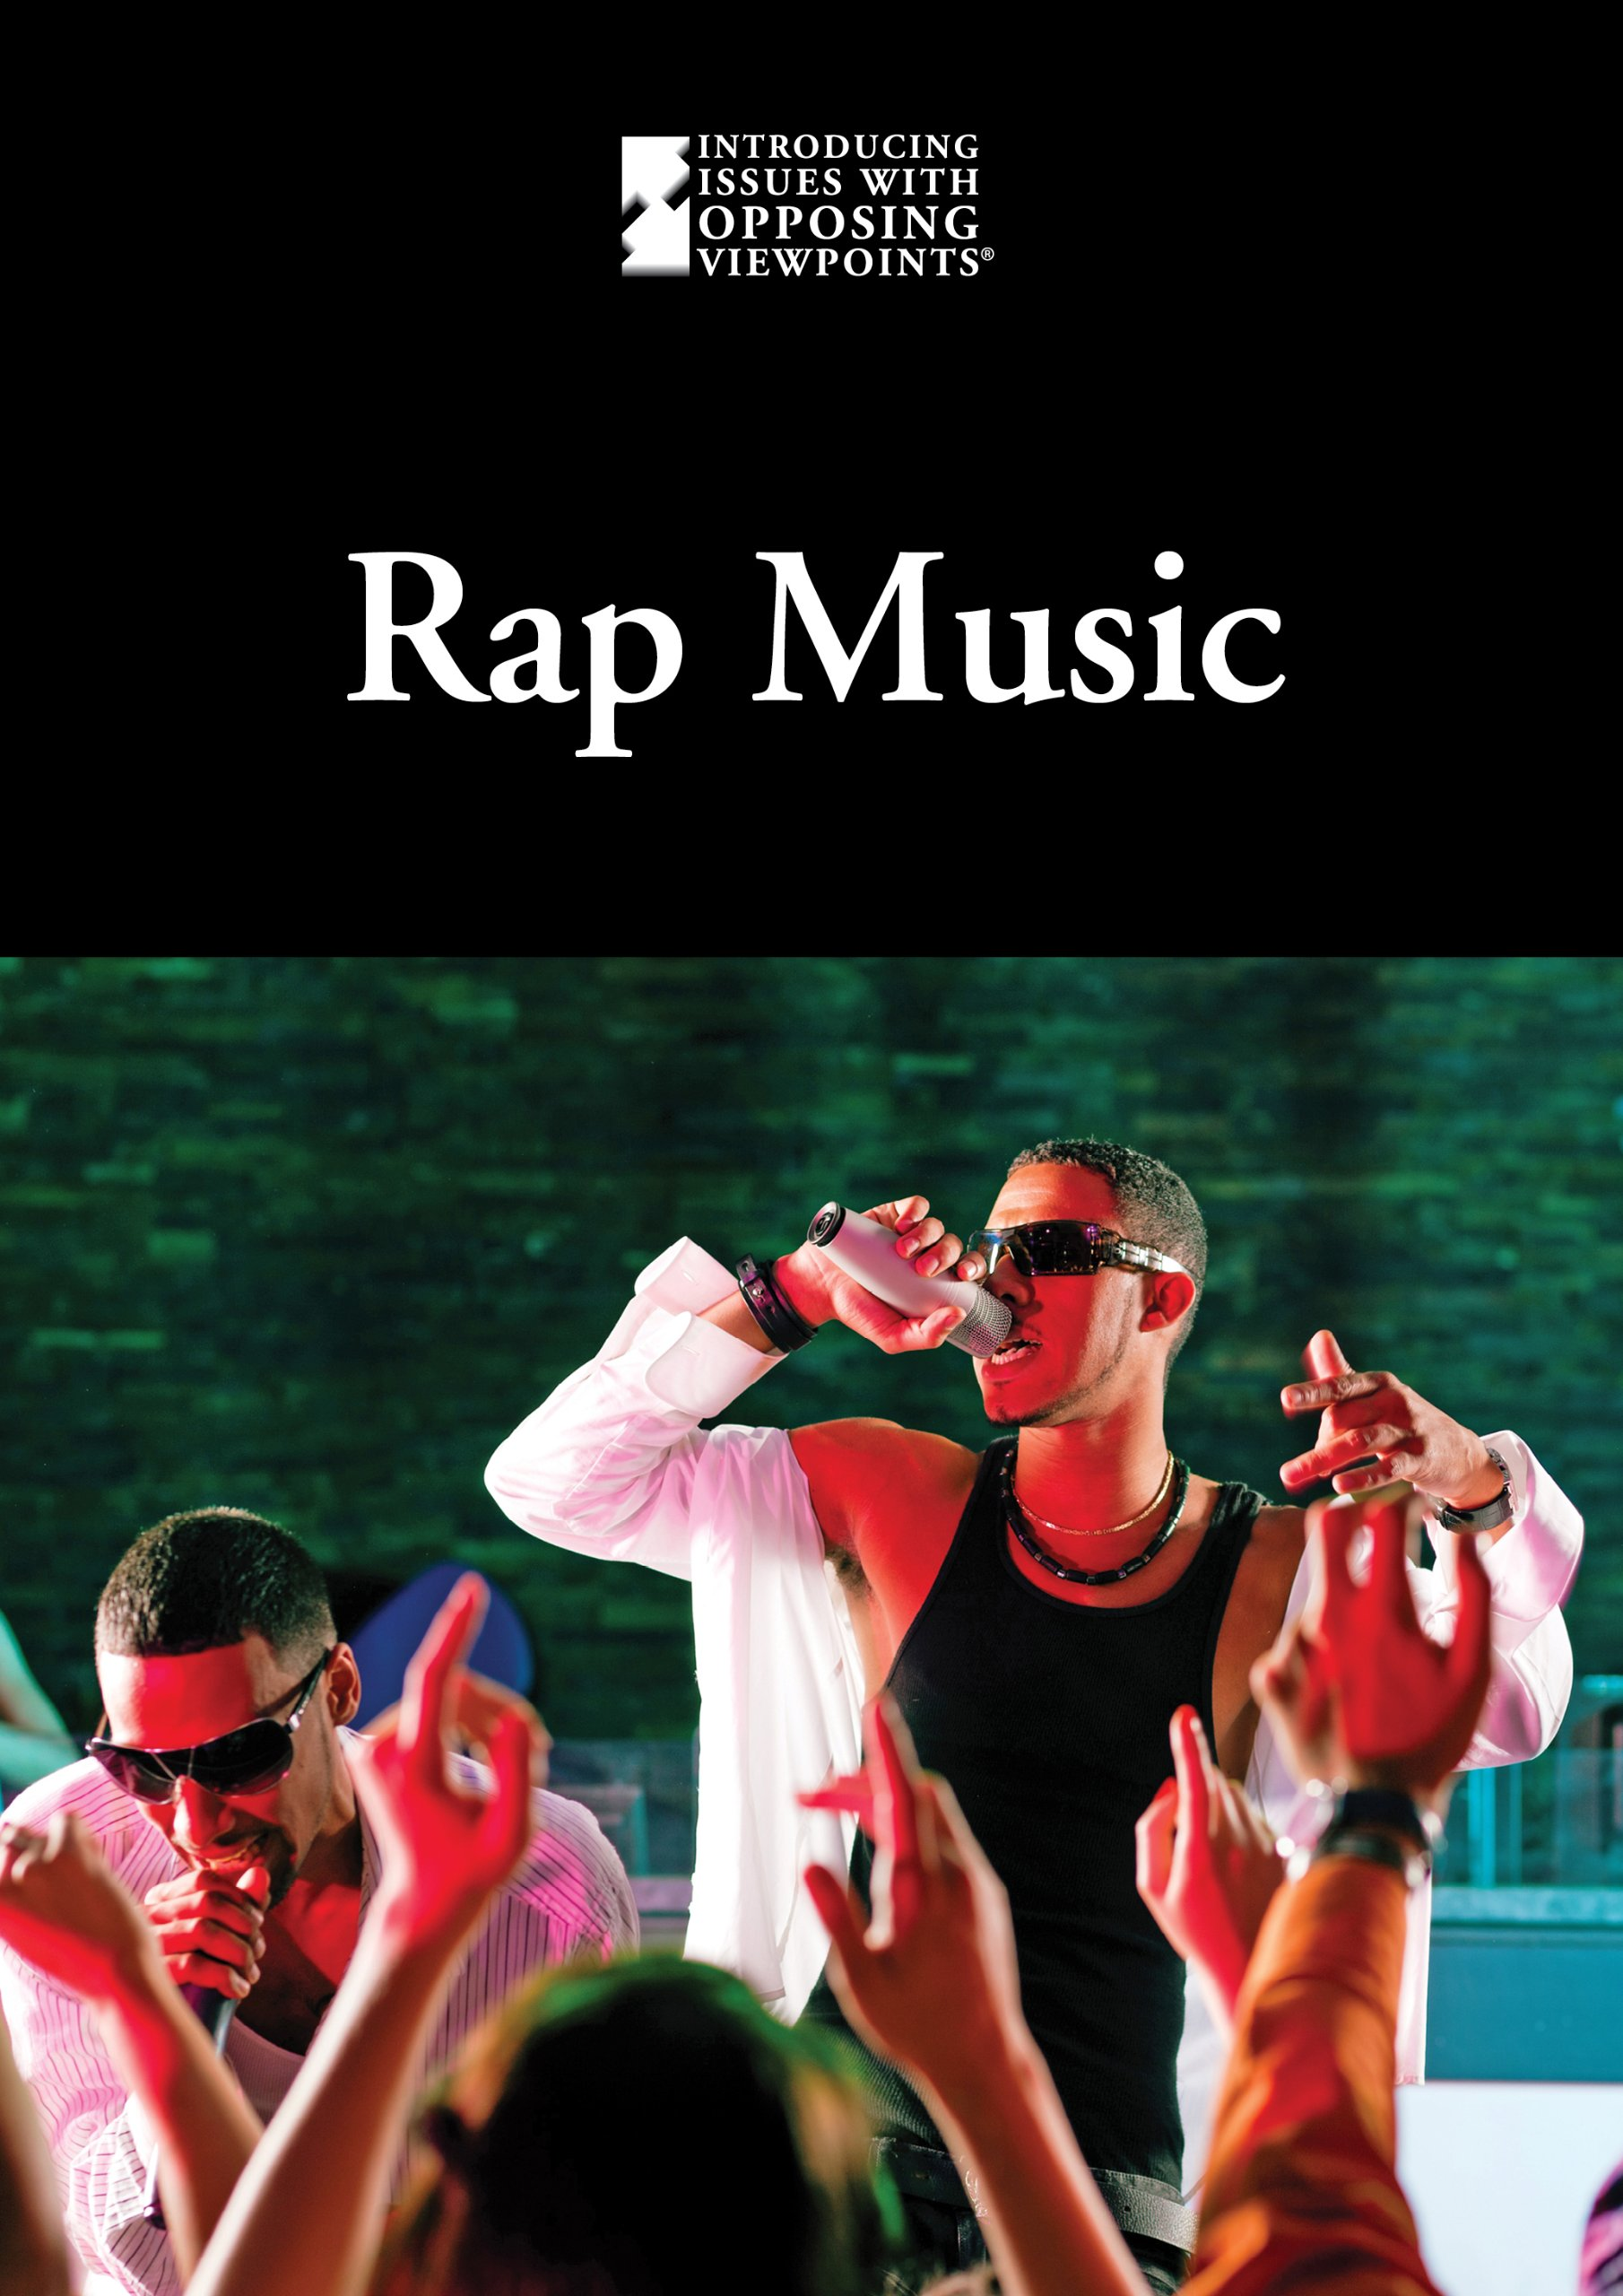 Rap Music (Introducing Issues With Opposing Viewpoints) pdf epub